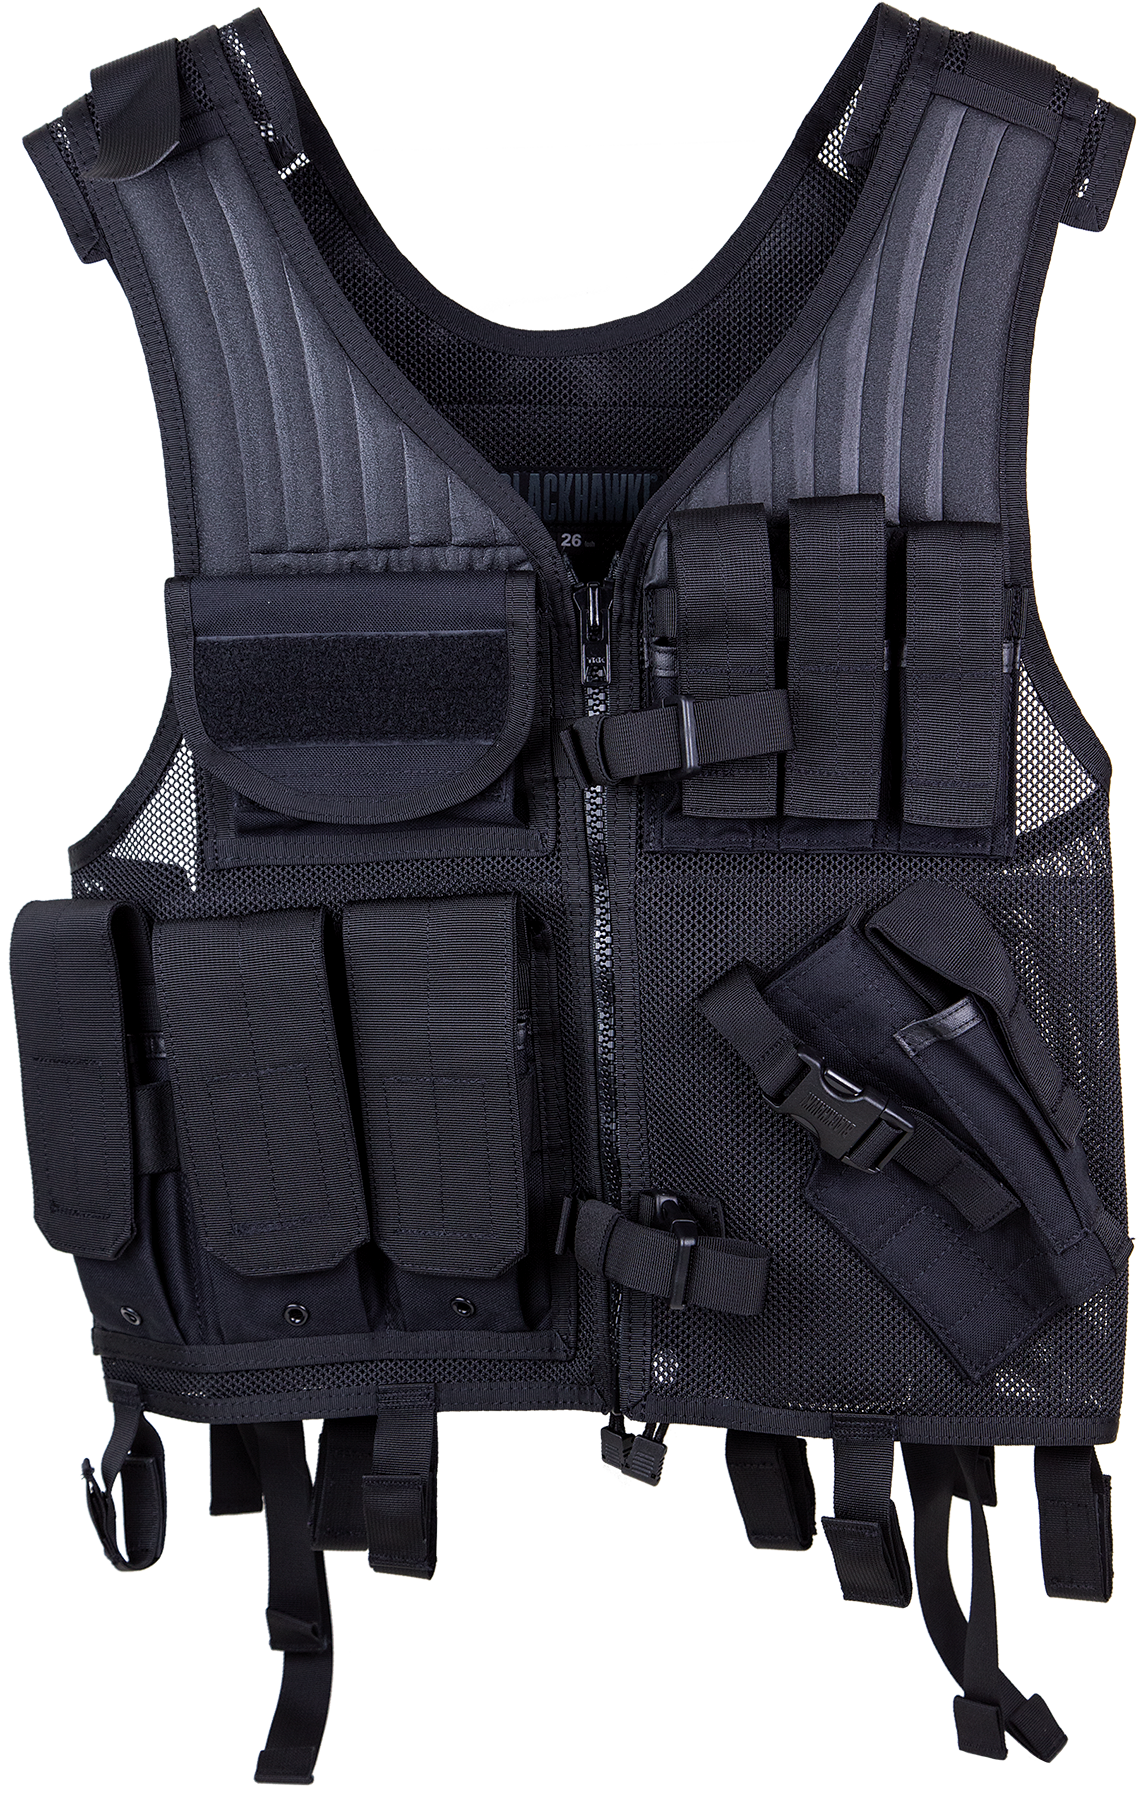 Blackhawk 30EV26BK Omega Elite Pistol Tactical Vest Nylon Mesh Adjustable Black